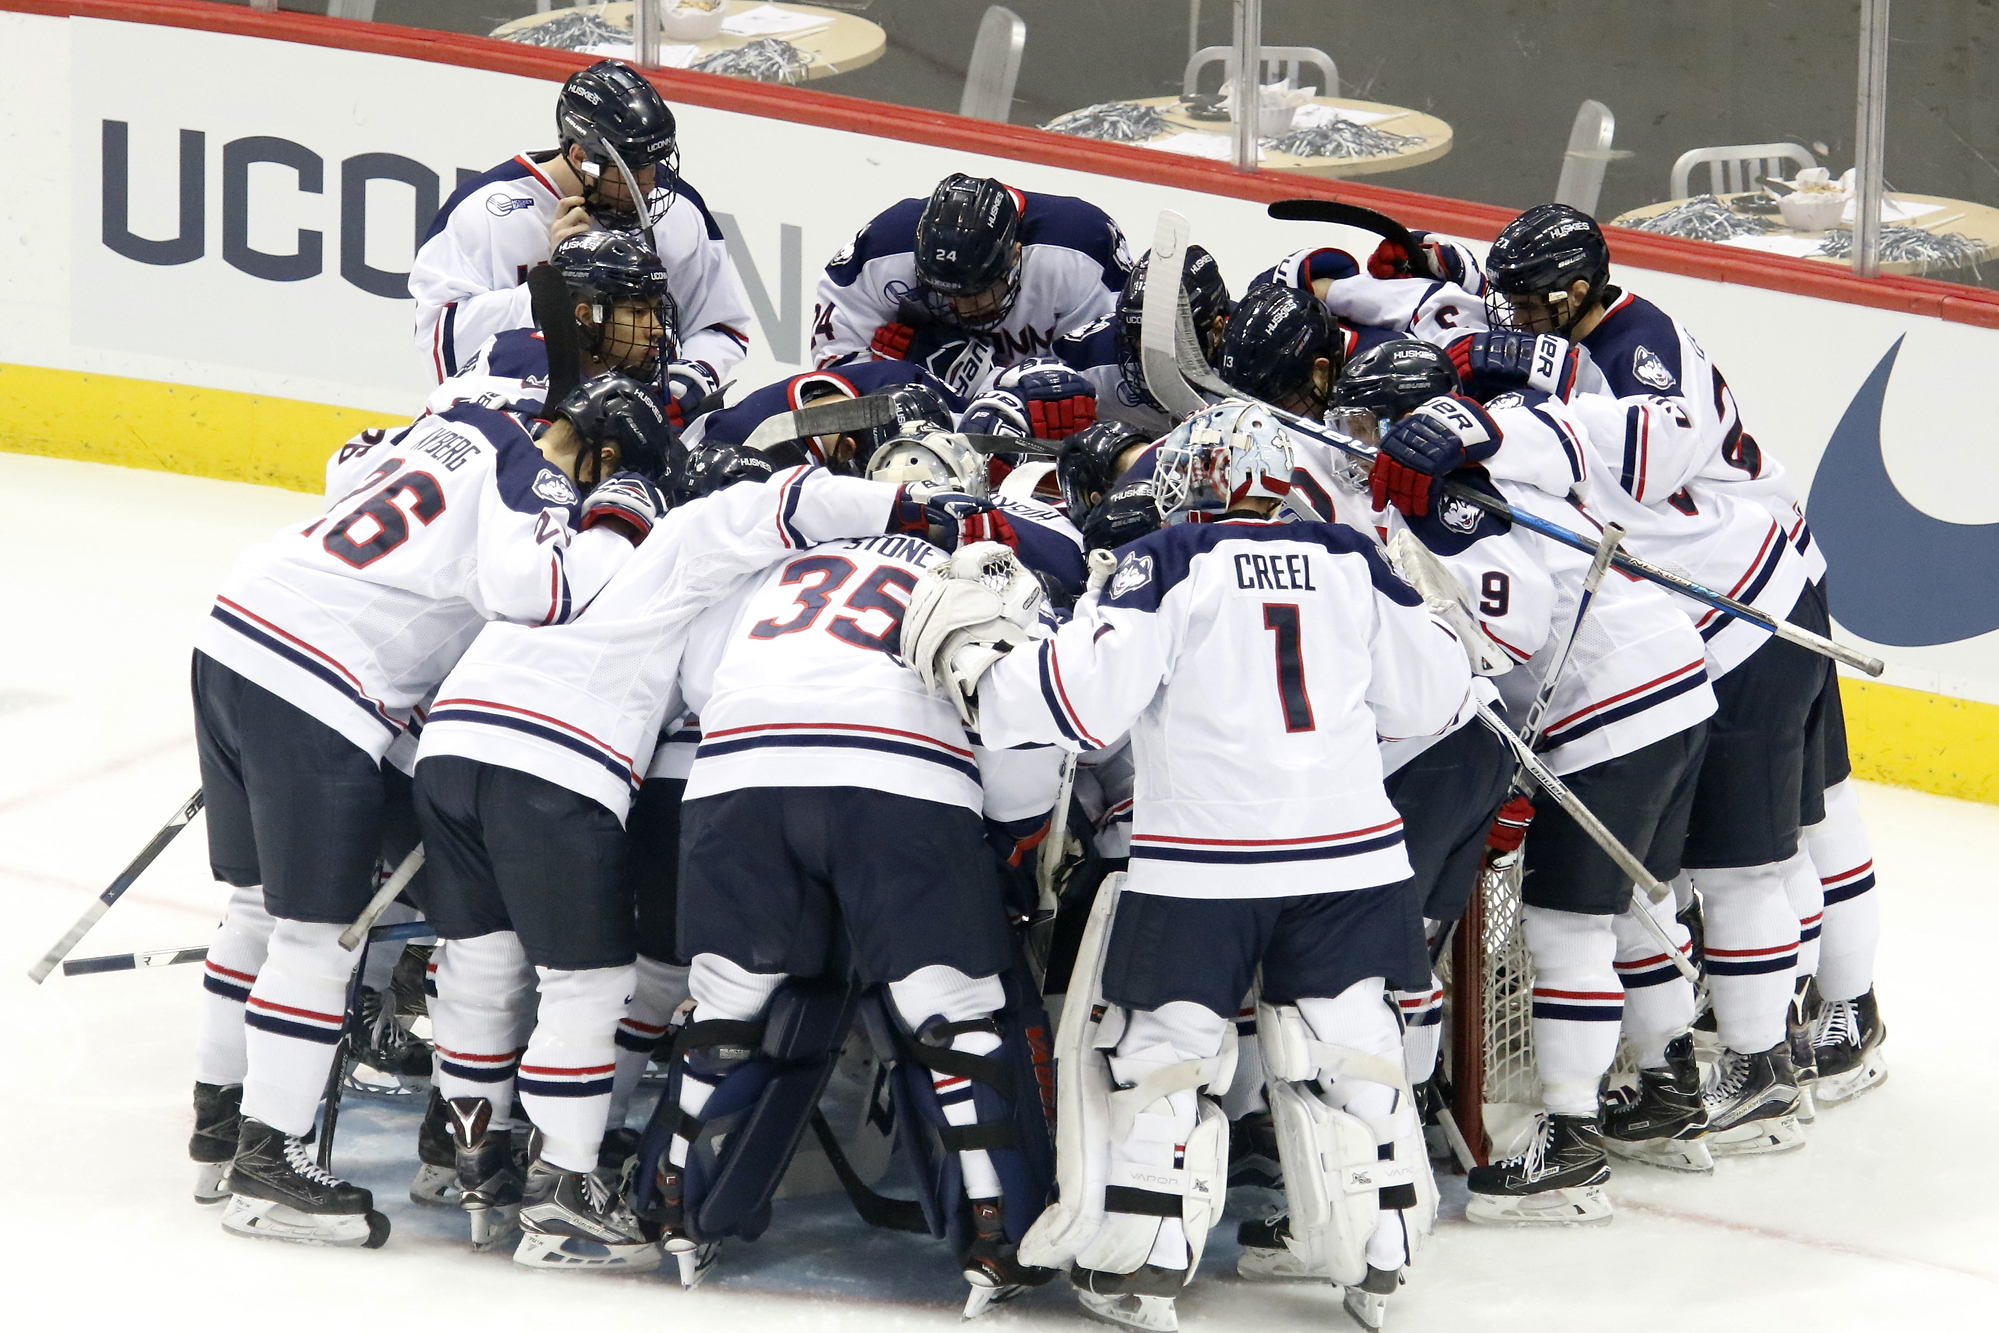 The UConn men's hockey team huddles up before their game against Northeastern at the XL Center in Hartford, CT  on November 28, 2017.